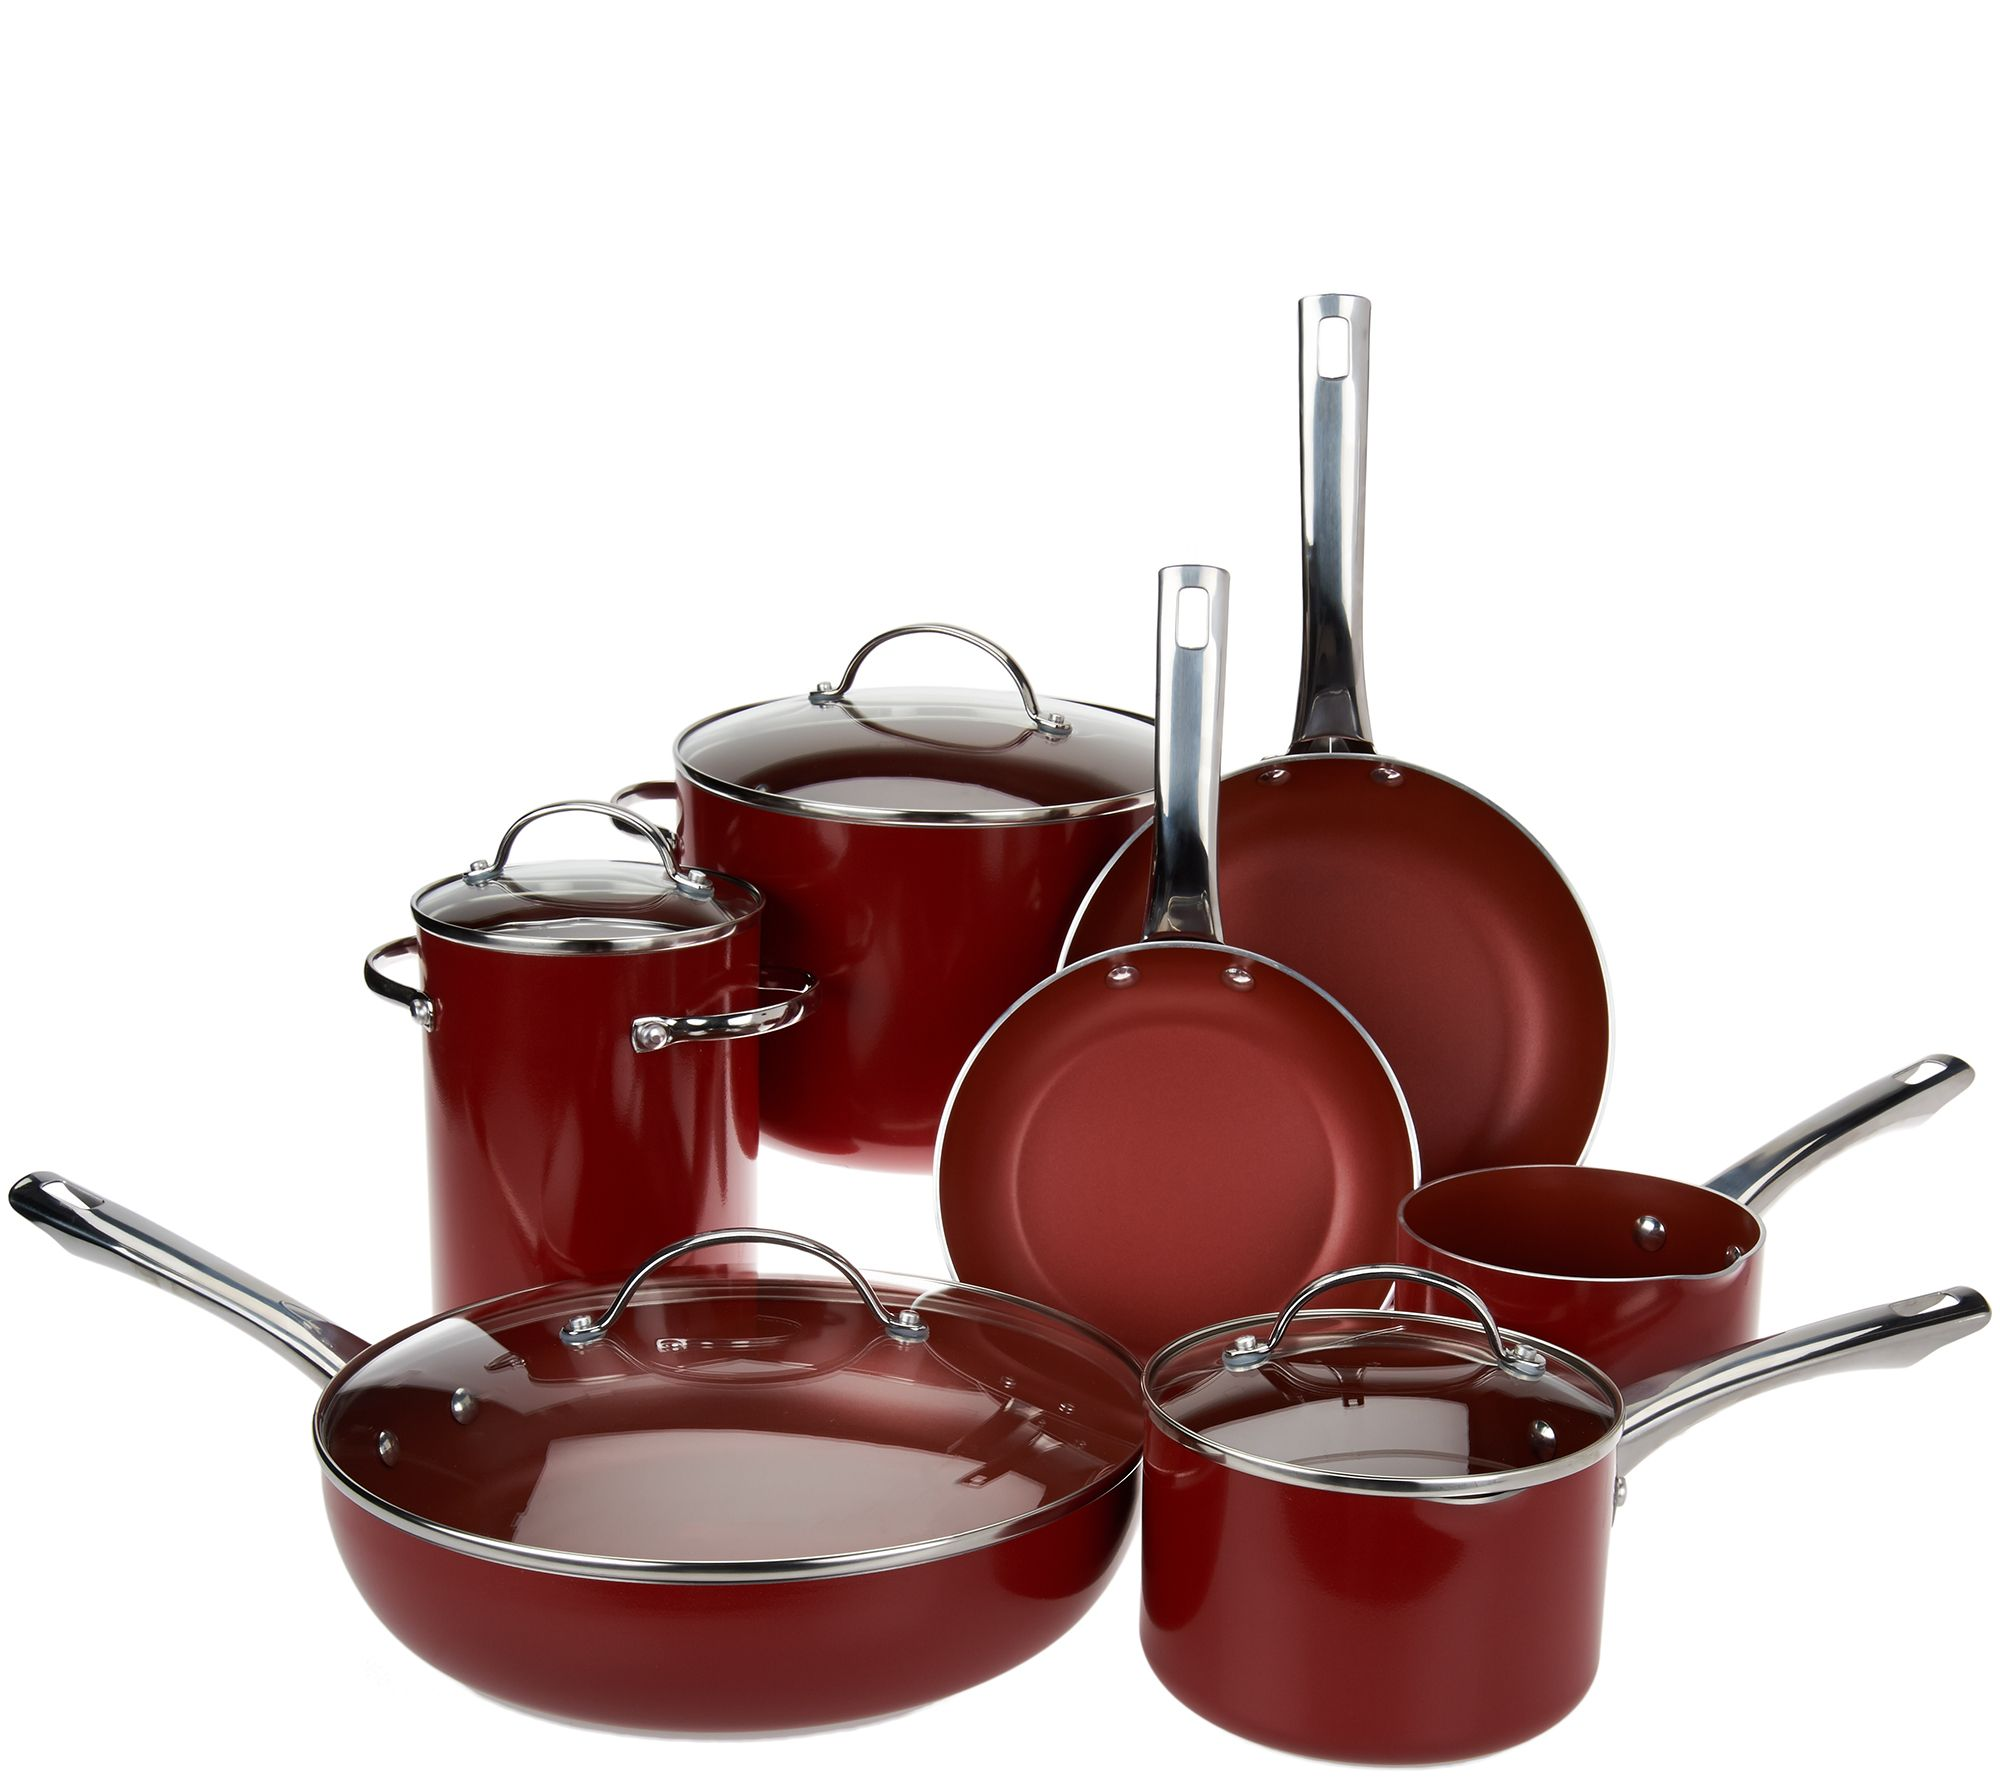 12pc Porcelain Enamel Cookware Set